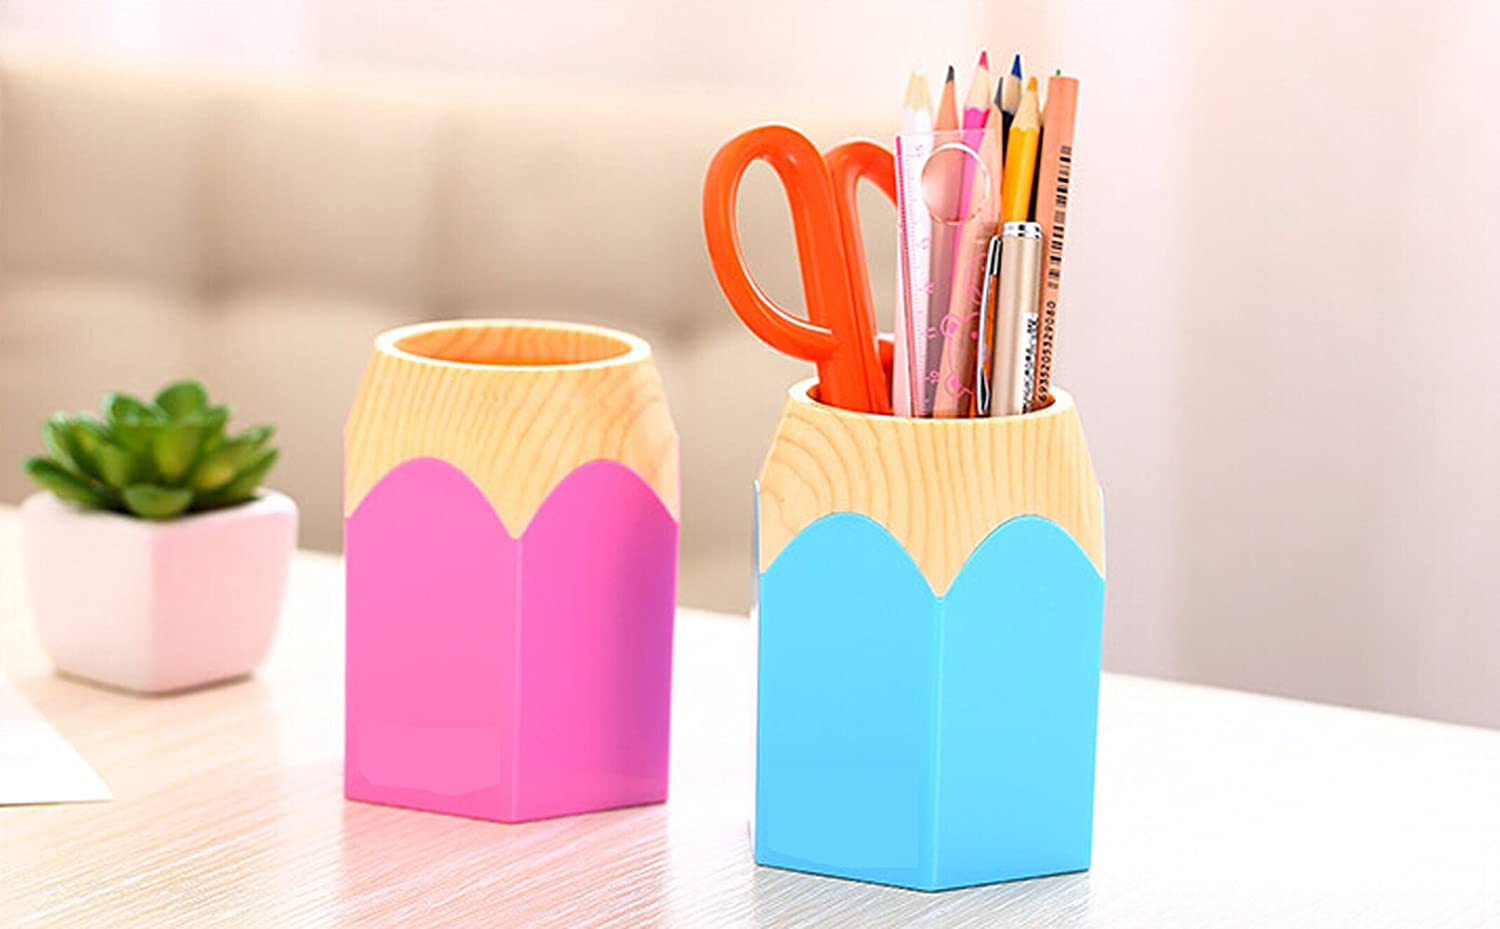 Amazon.com : Pencil Stub Shape Plastic Pen Holder Cup Stand Pencil Pot  Holder Container Organizer for Pens, Utensils, Office Supplies Caddy, ...